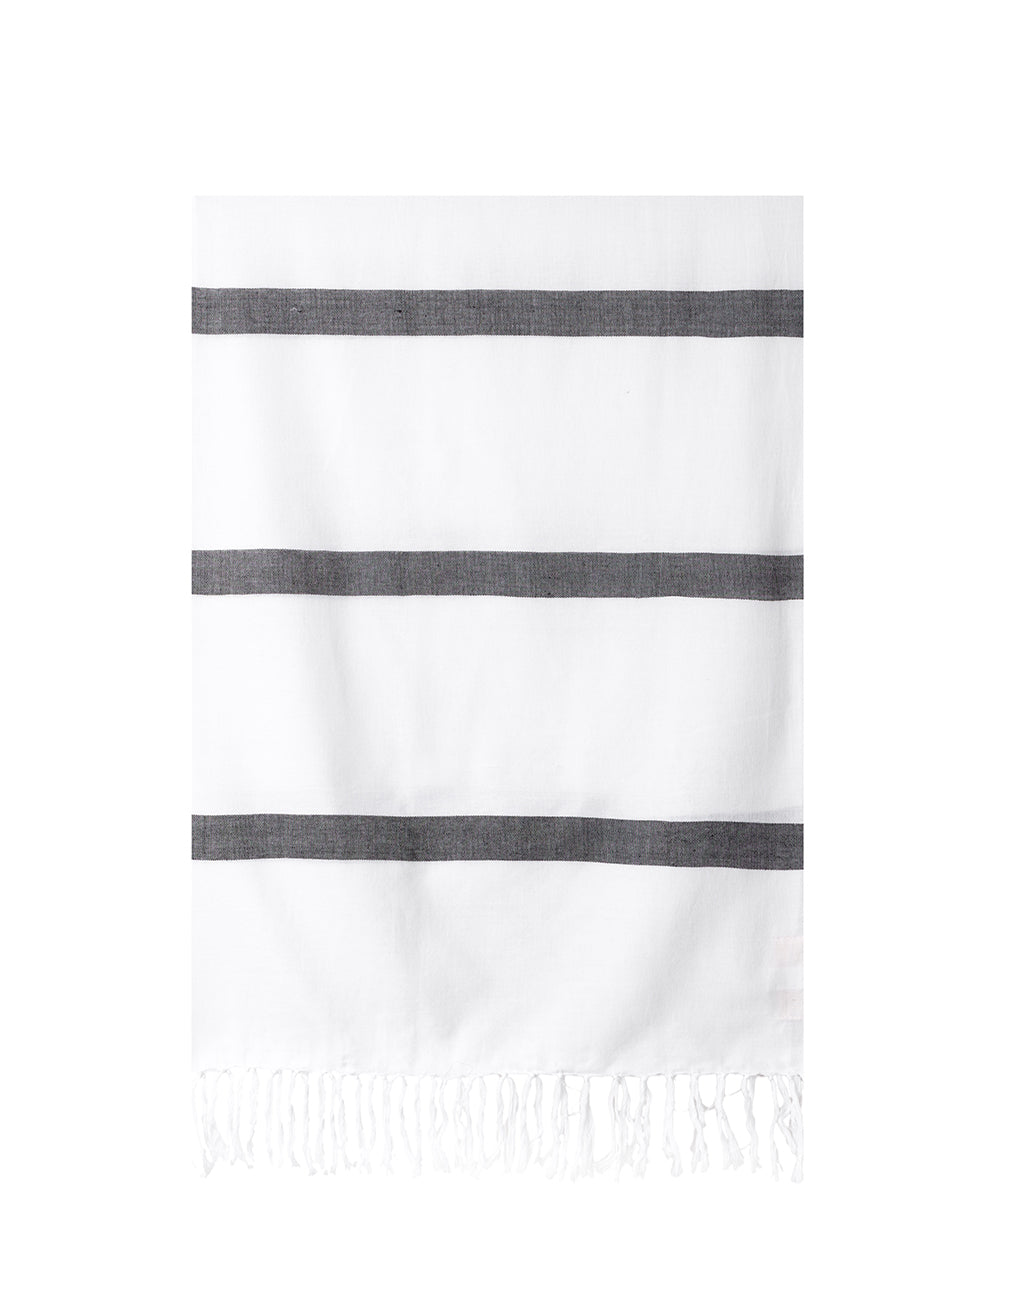 Lightweight Fringe Towel In Style No. 3 In Black | The Little Market